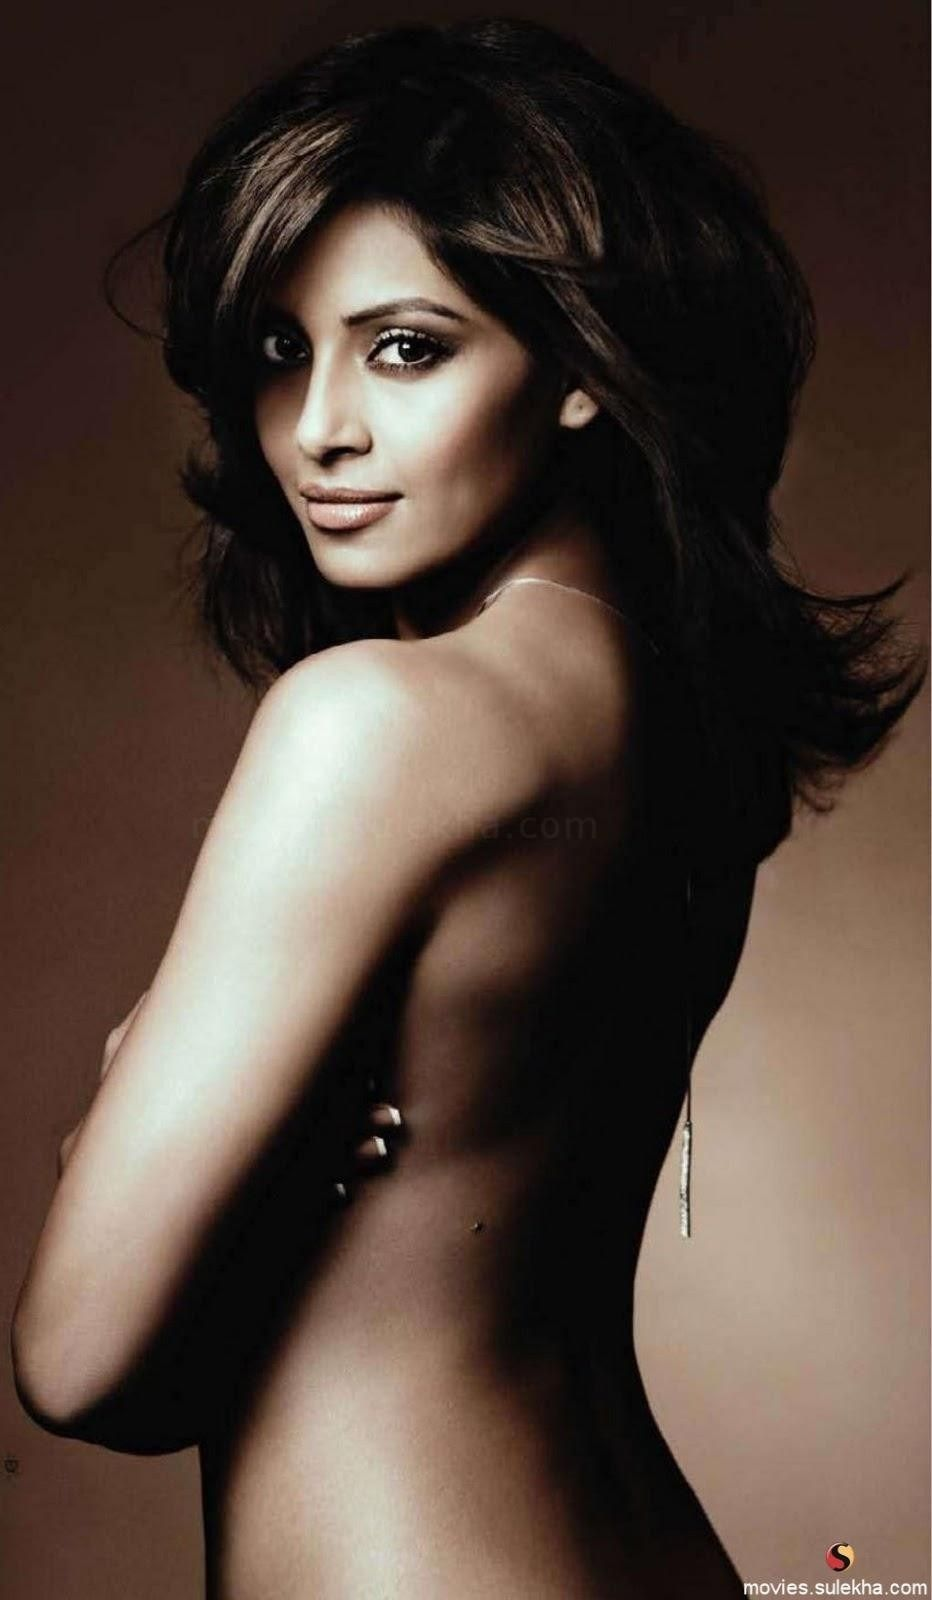 Picher hot Bipasha basu naked